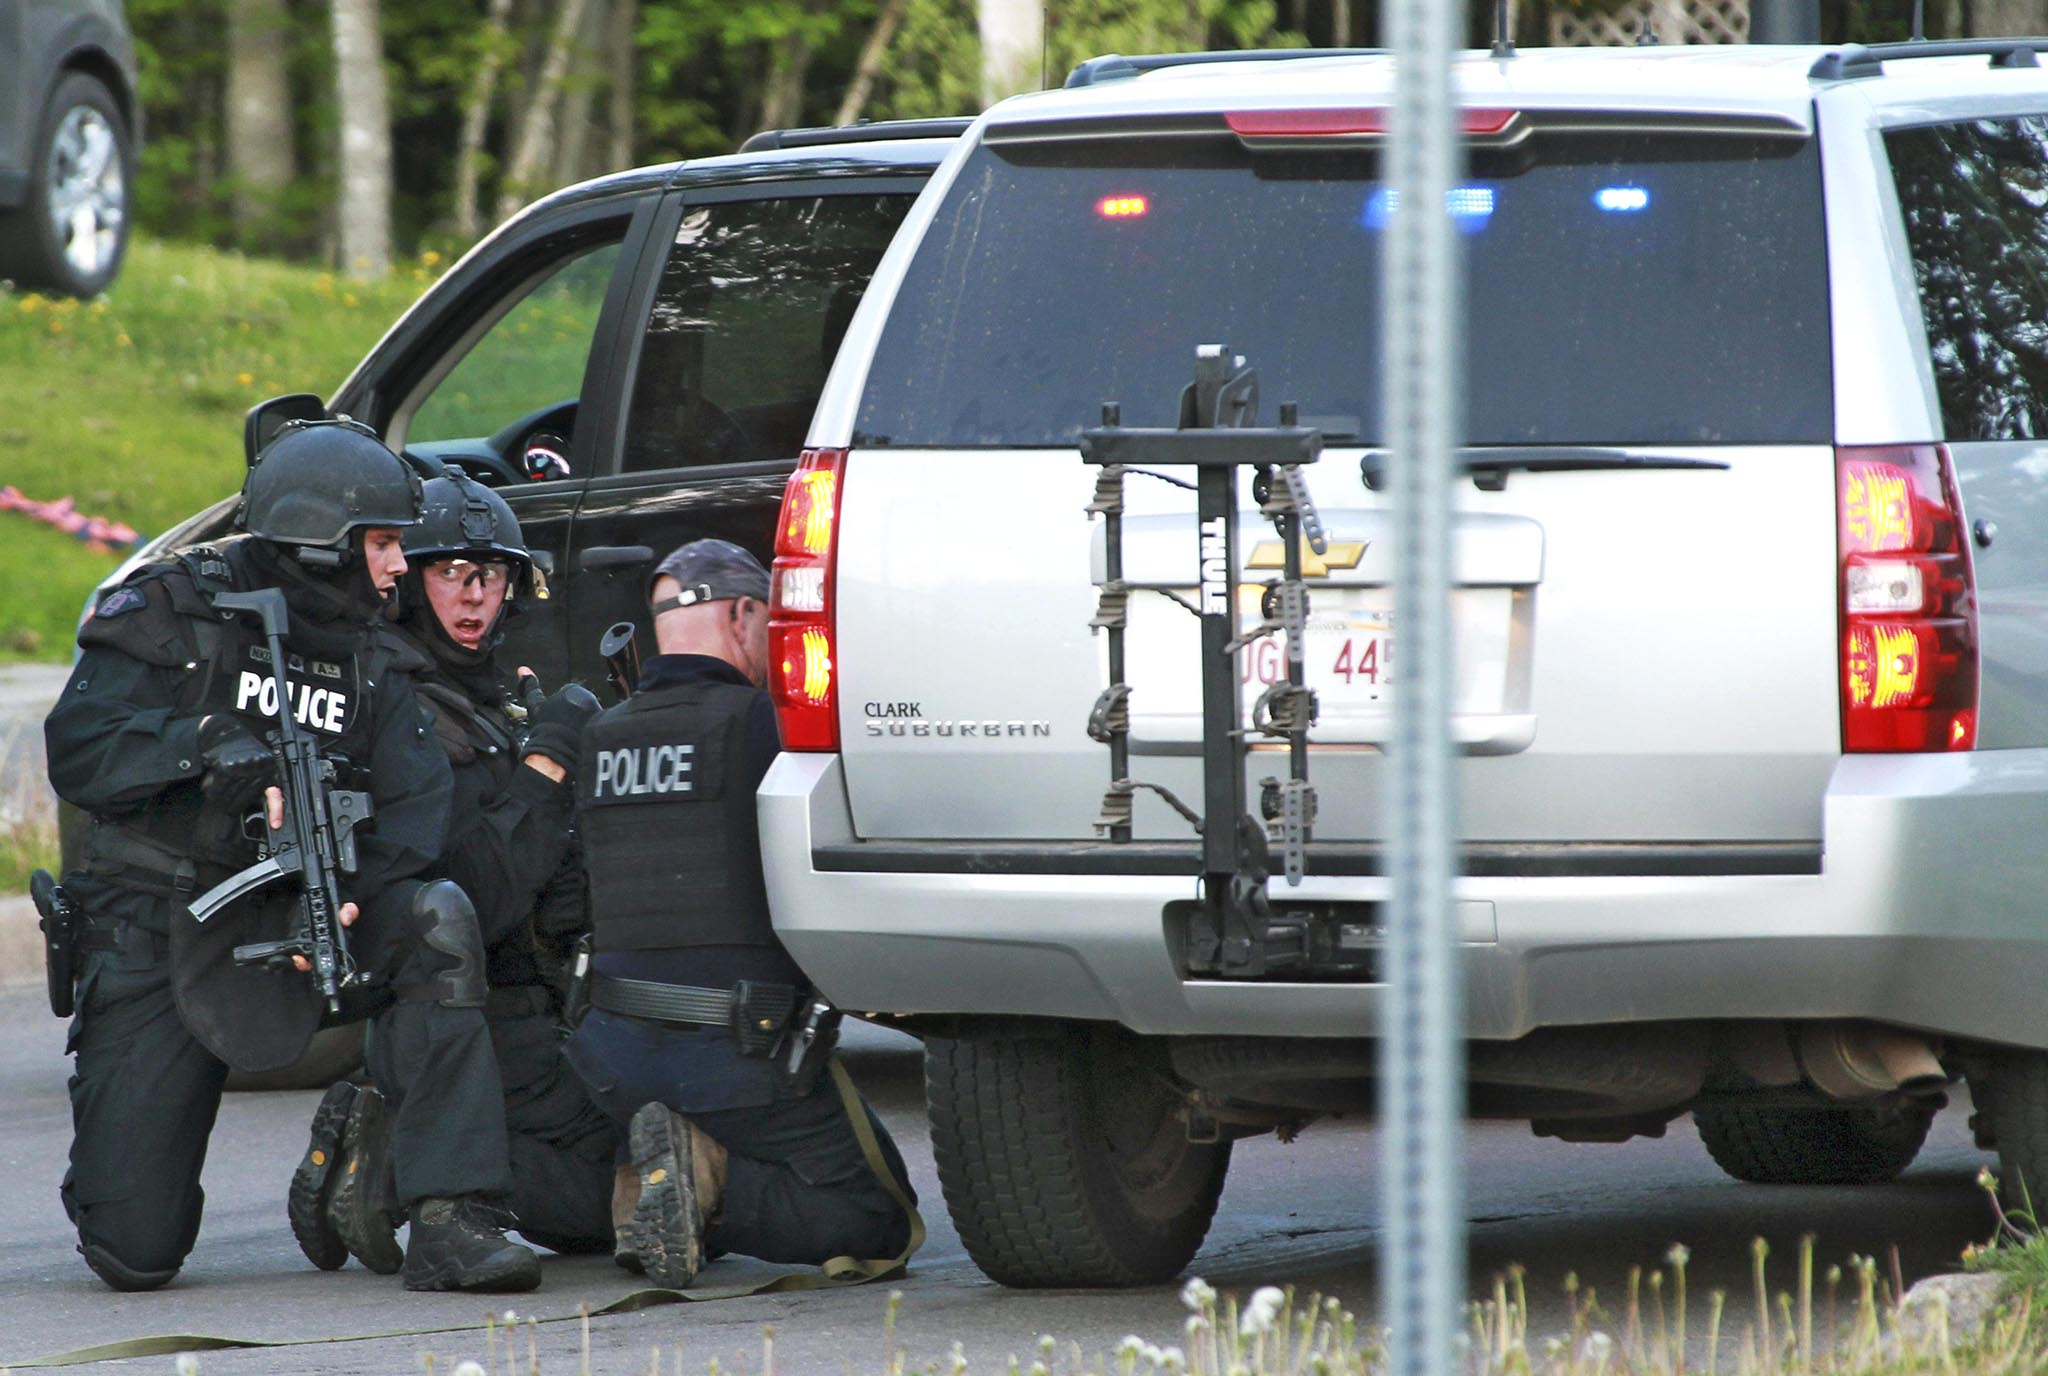 Emergency Response team members take cover behind vehicles in Moncton